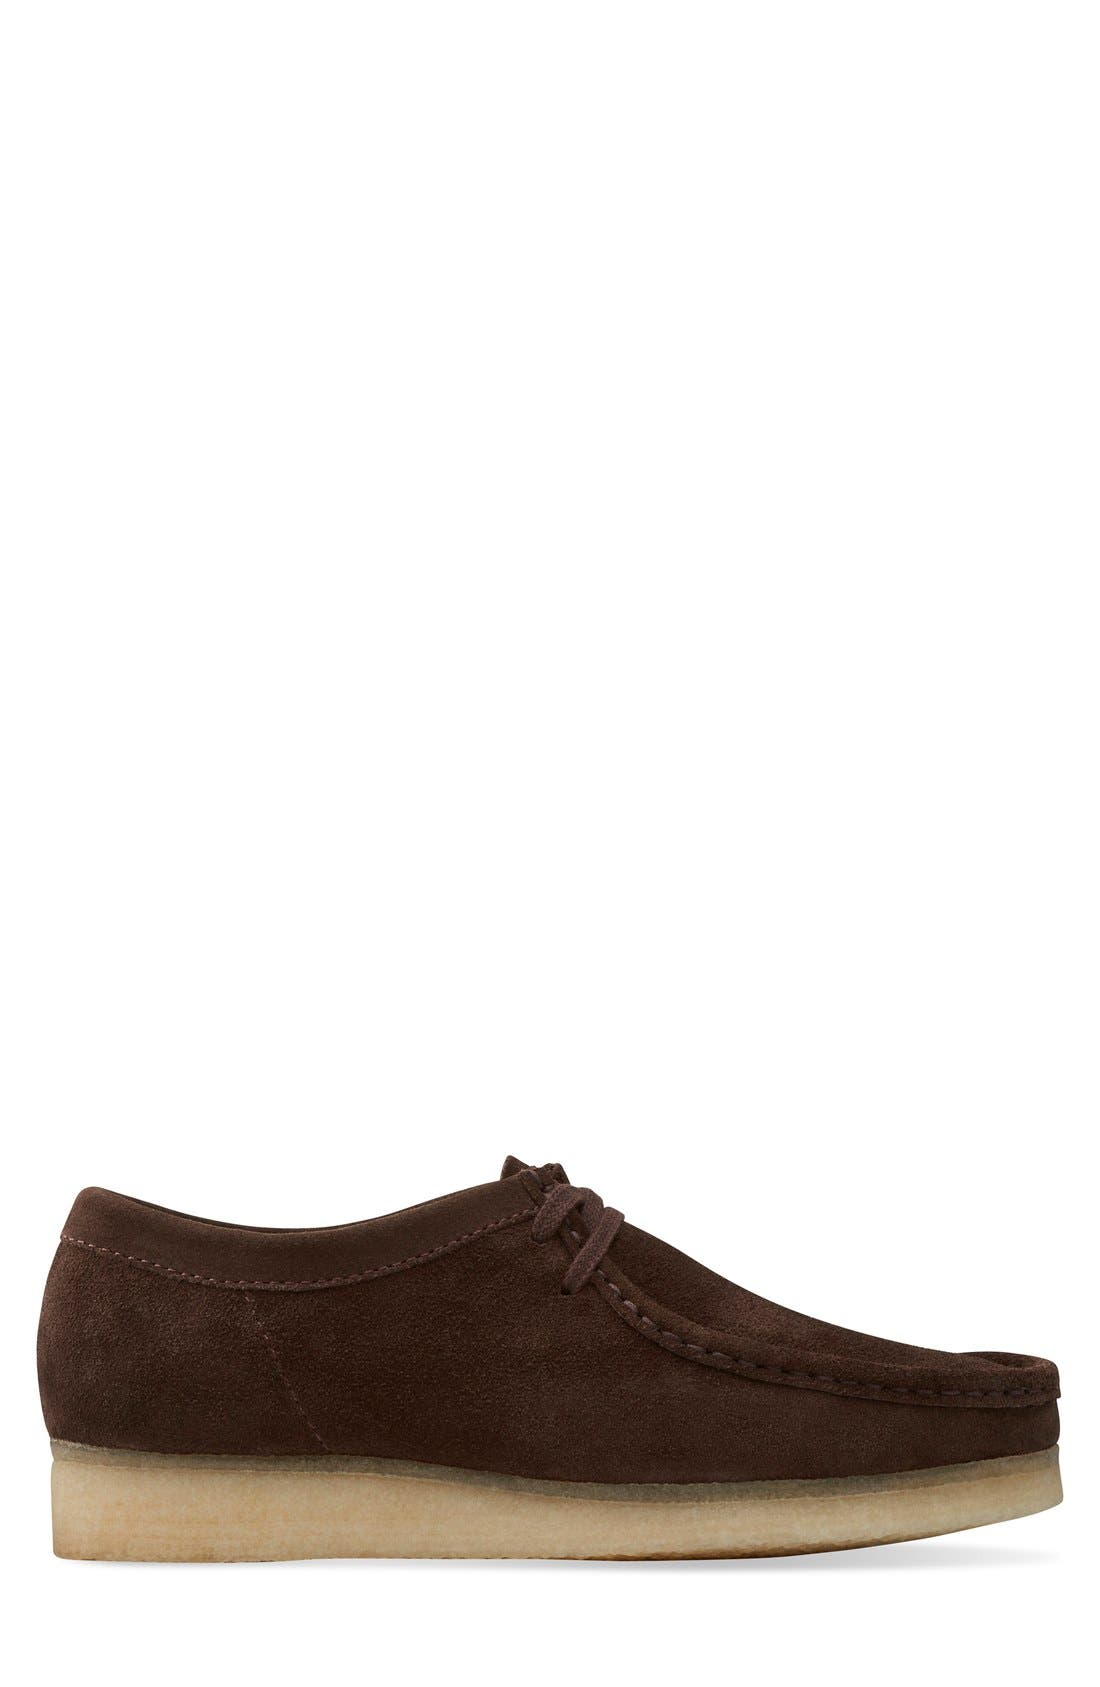 'Wallabee' Moc Toe Derby (Online Only),                             Alternate thumbnail 22, color,